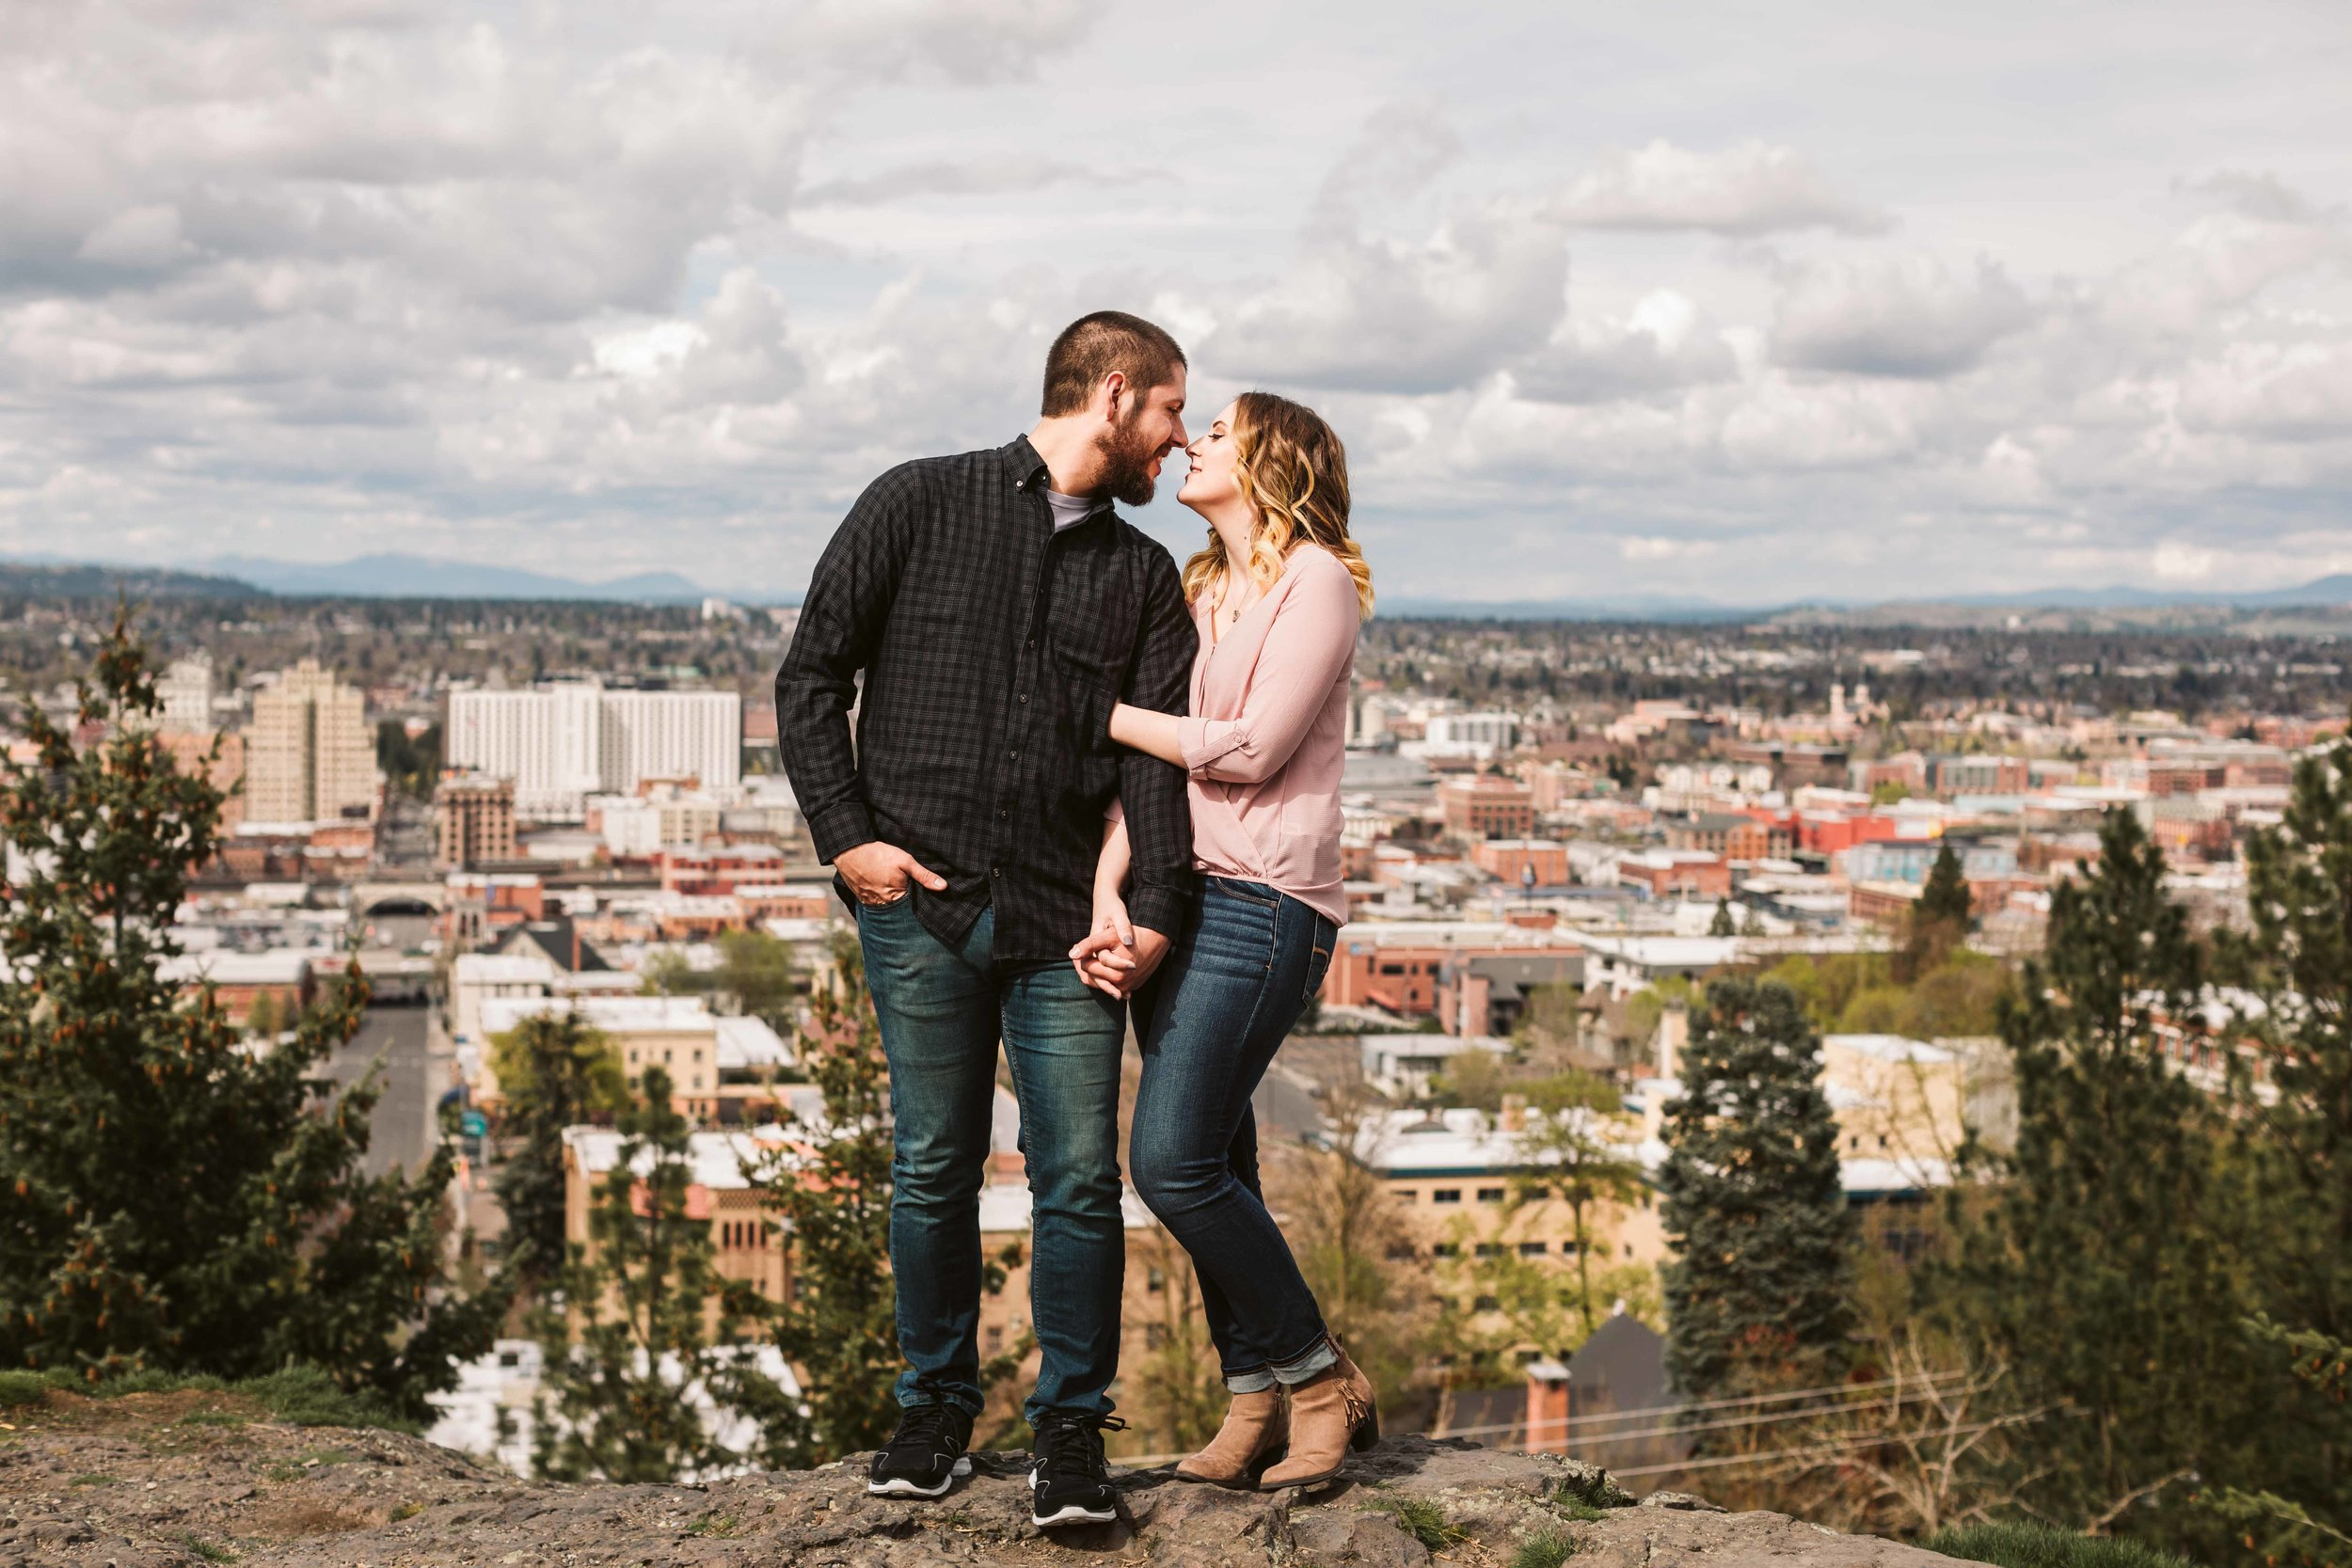 spokane-wedding-photographer-68.jpg